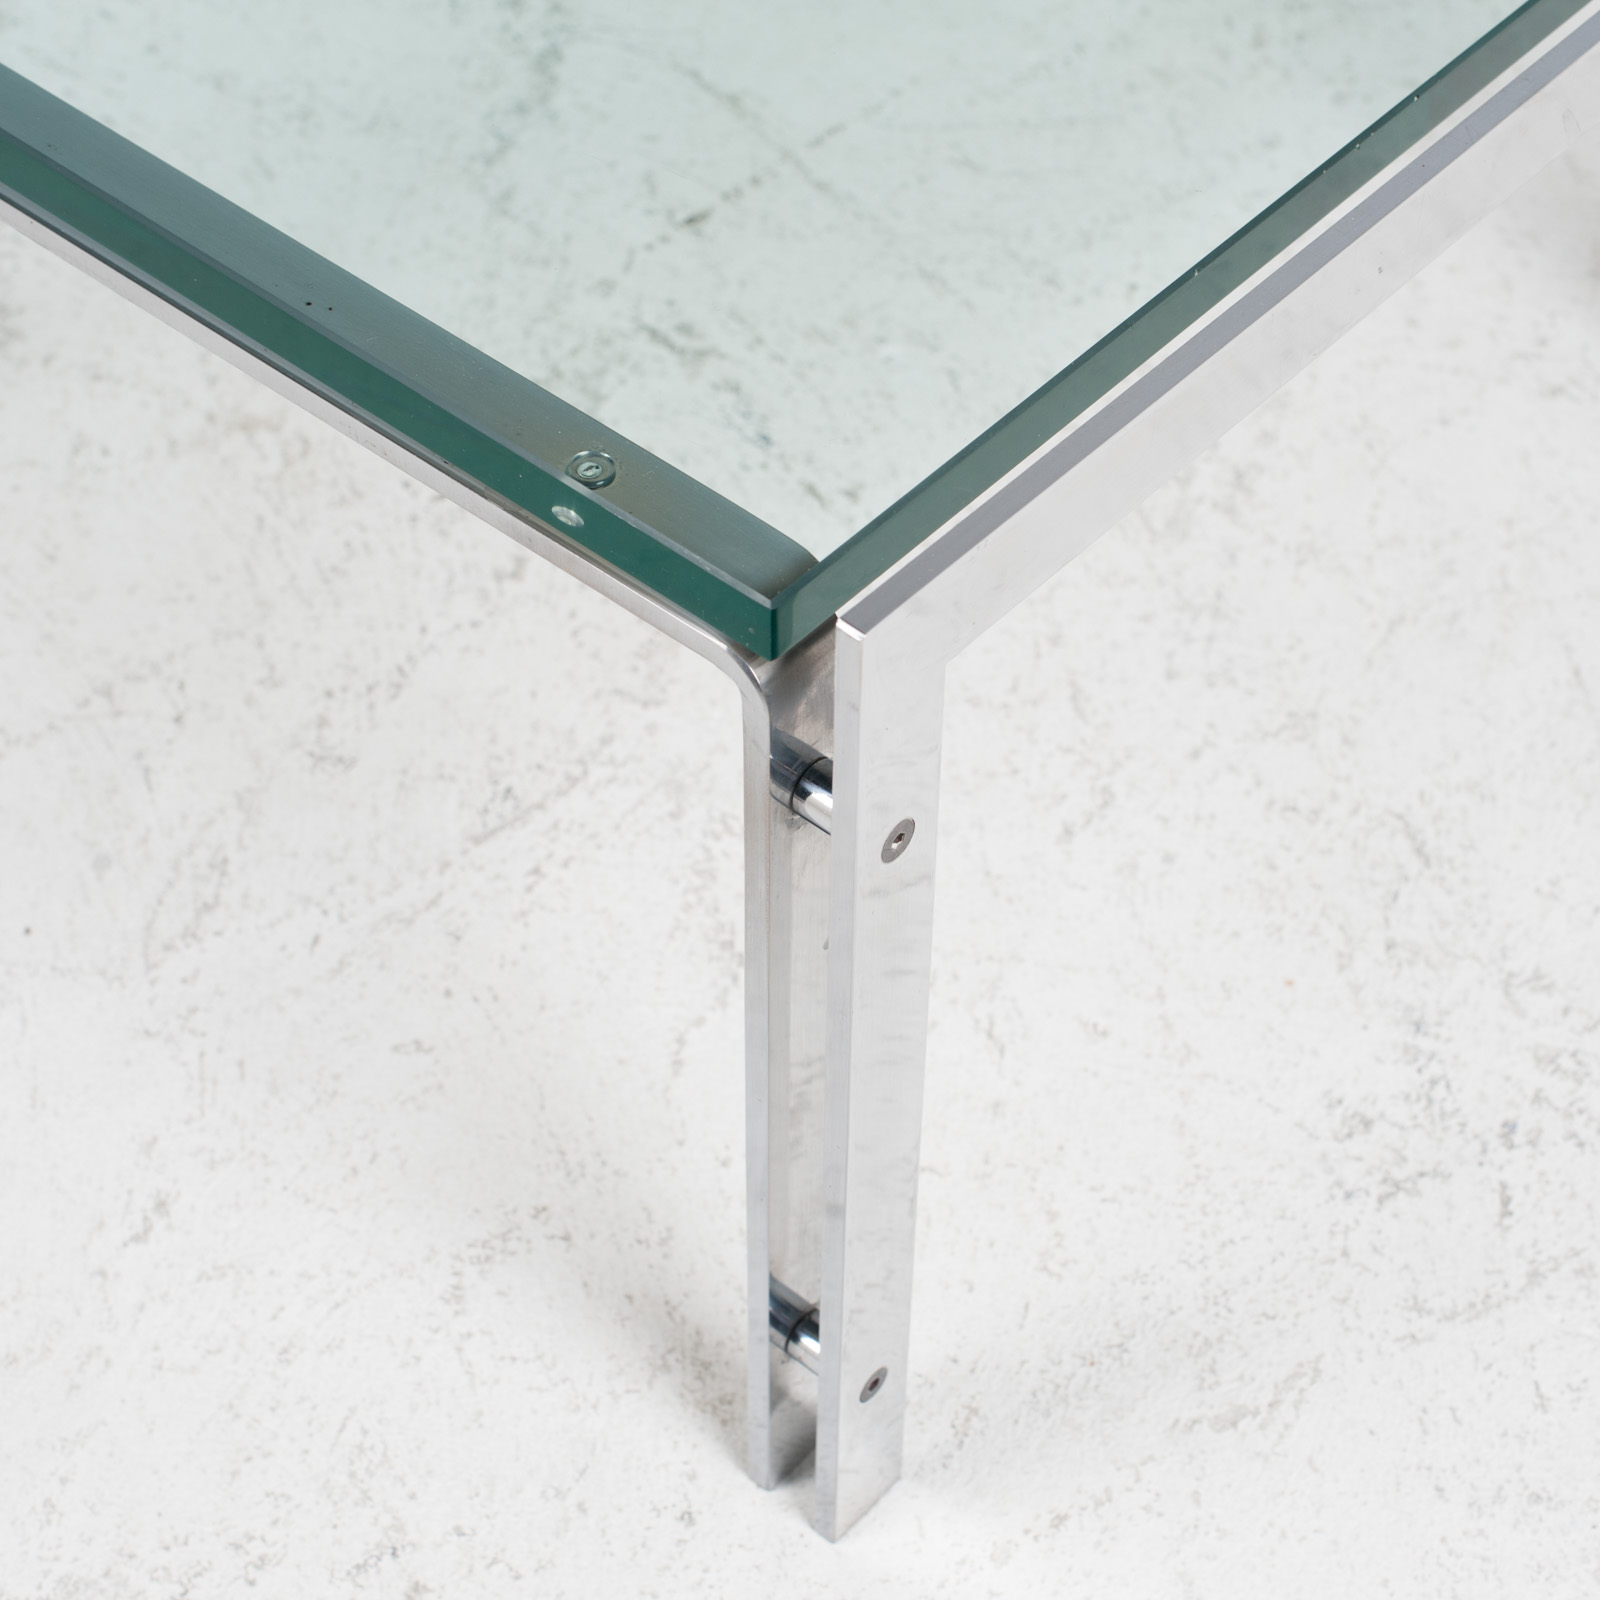 M1 Coffee Table By Hank Kwint For Metaform In Chrome 1970s Netherlands 03